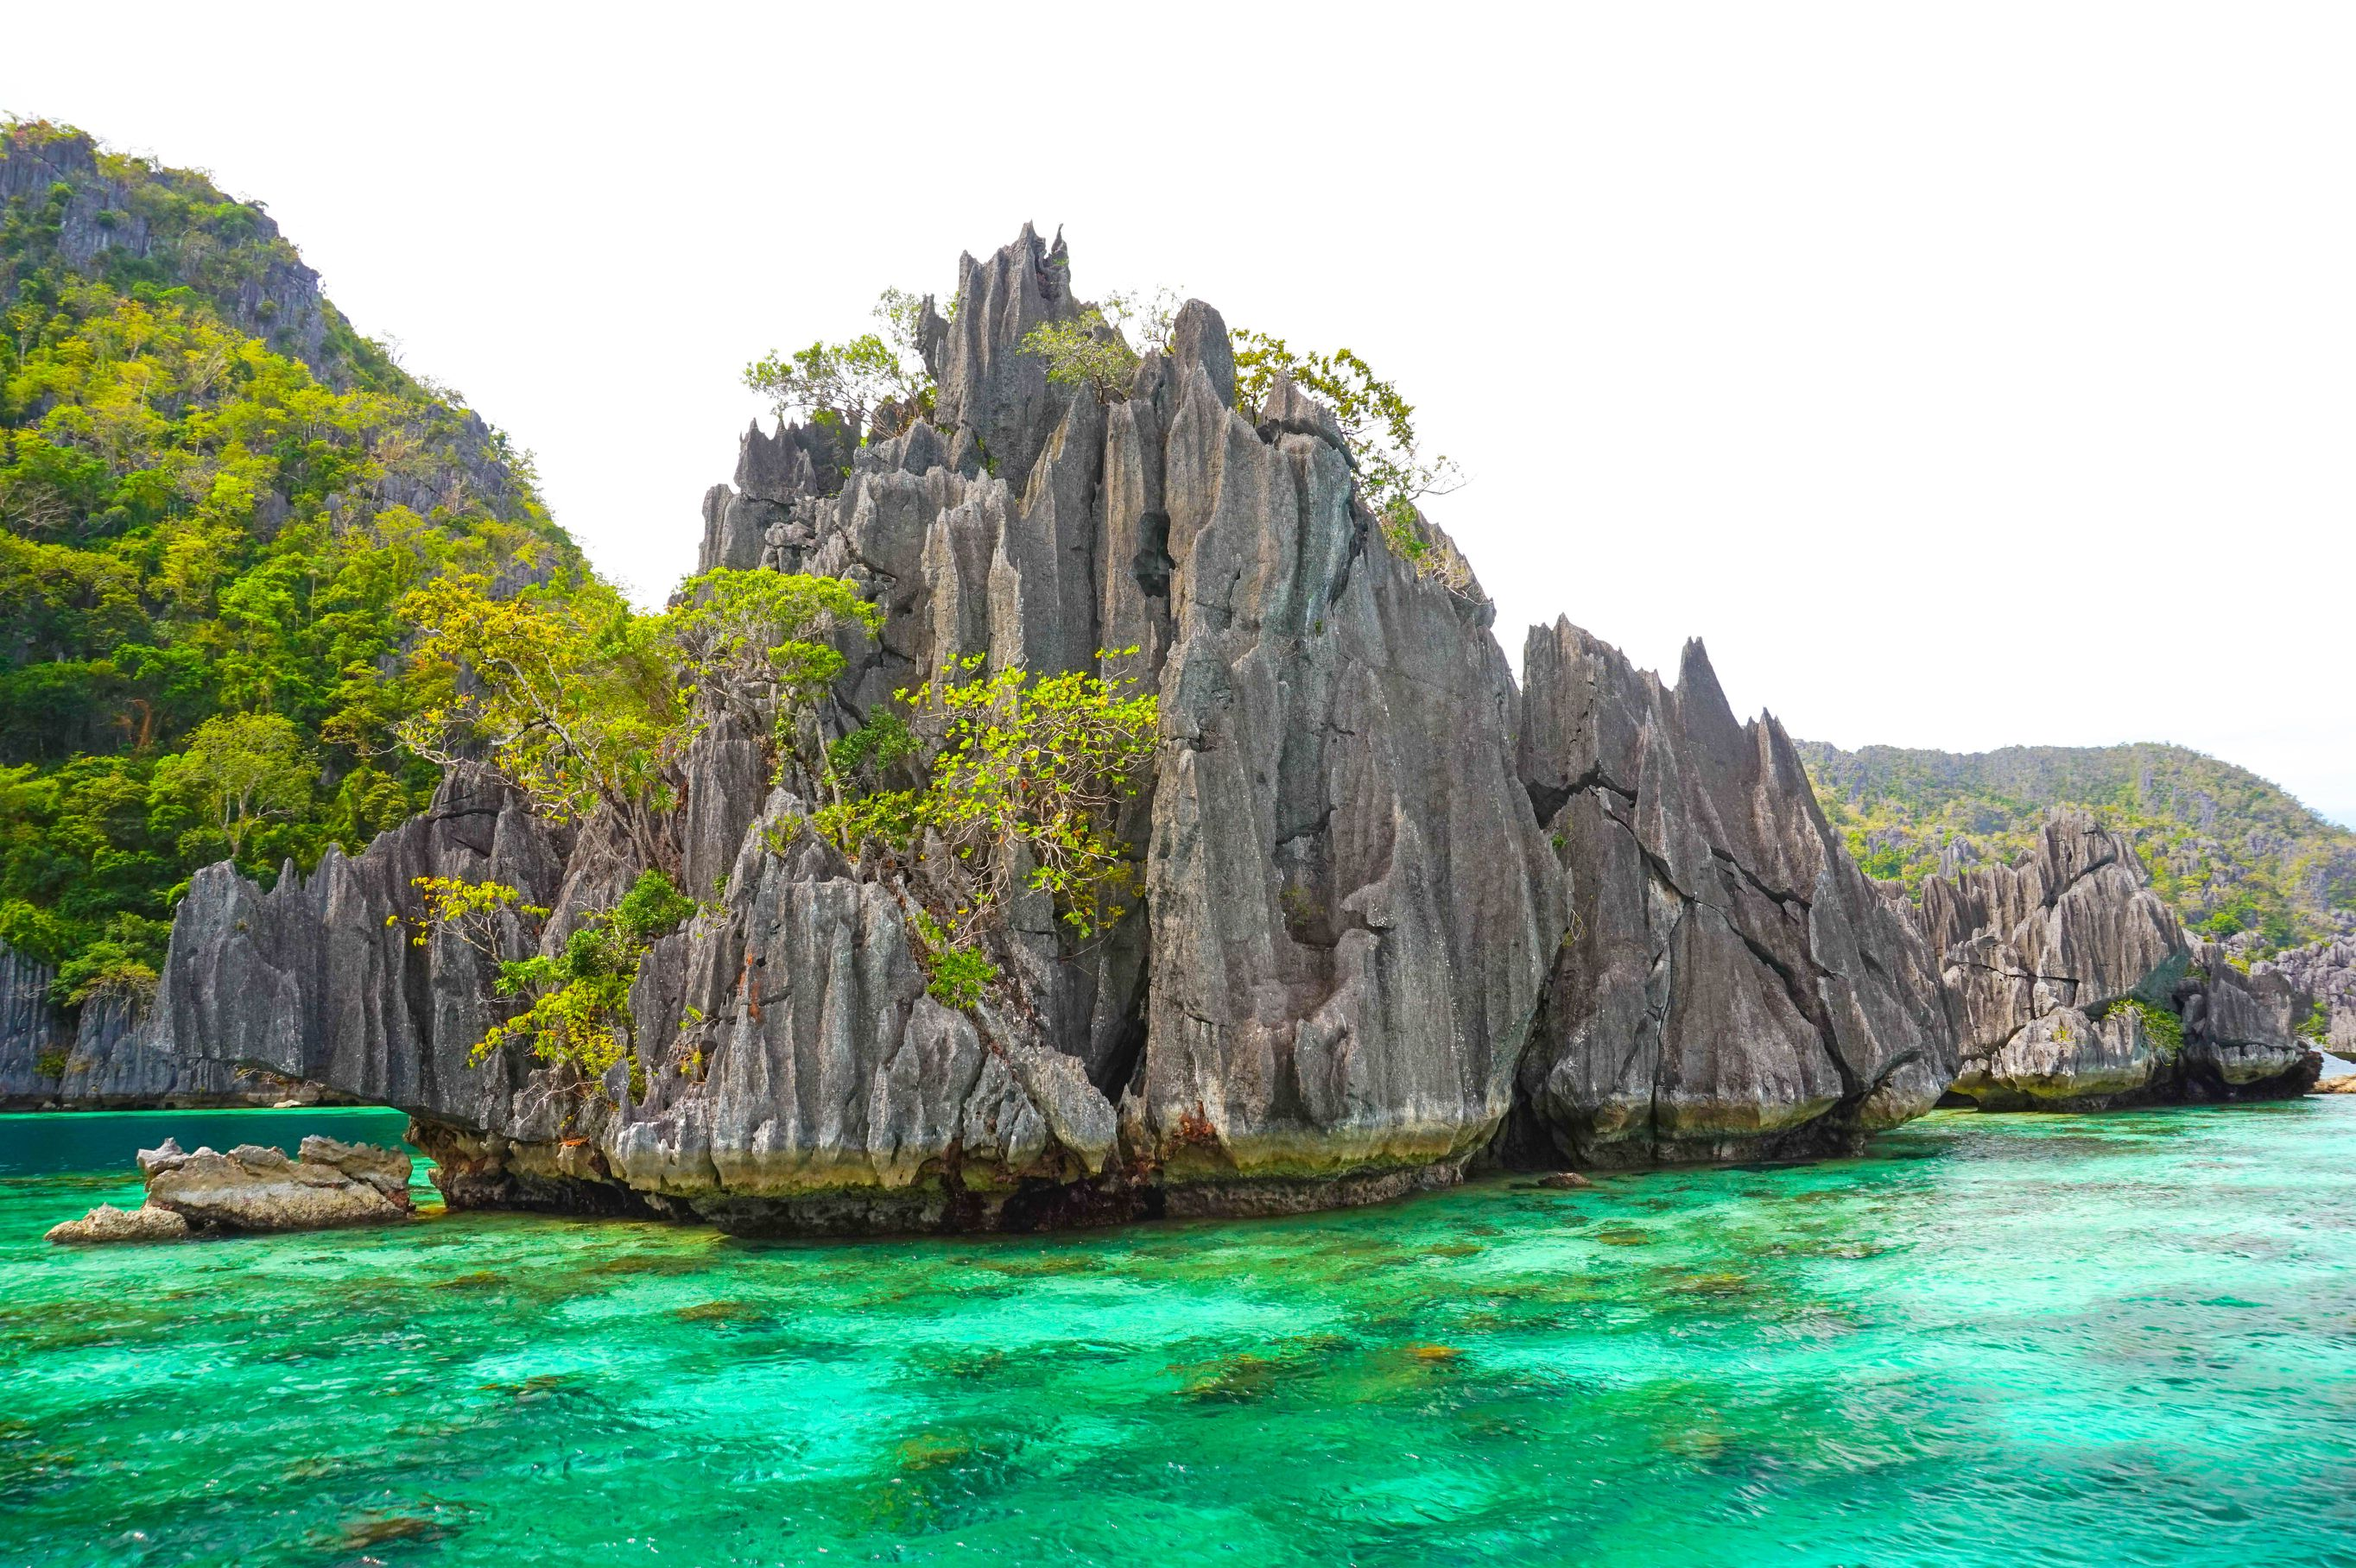 Limestone cliffs overhung with vegetation rising above turquoise waters in Coron, one of the most amazing places to visit in the Philippines